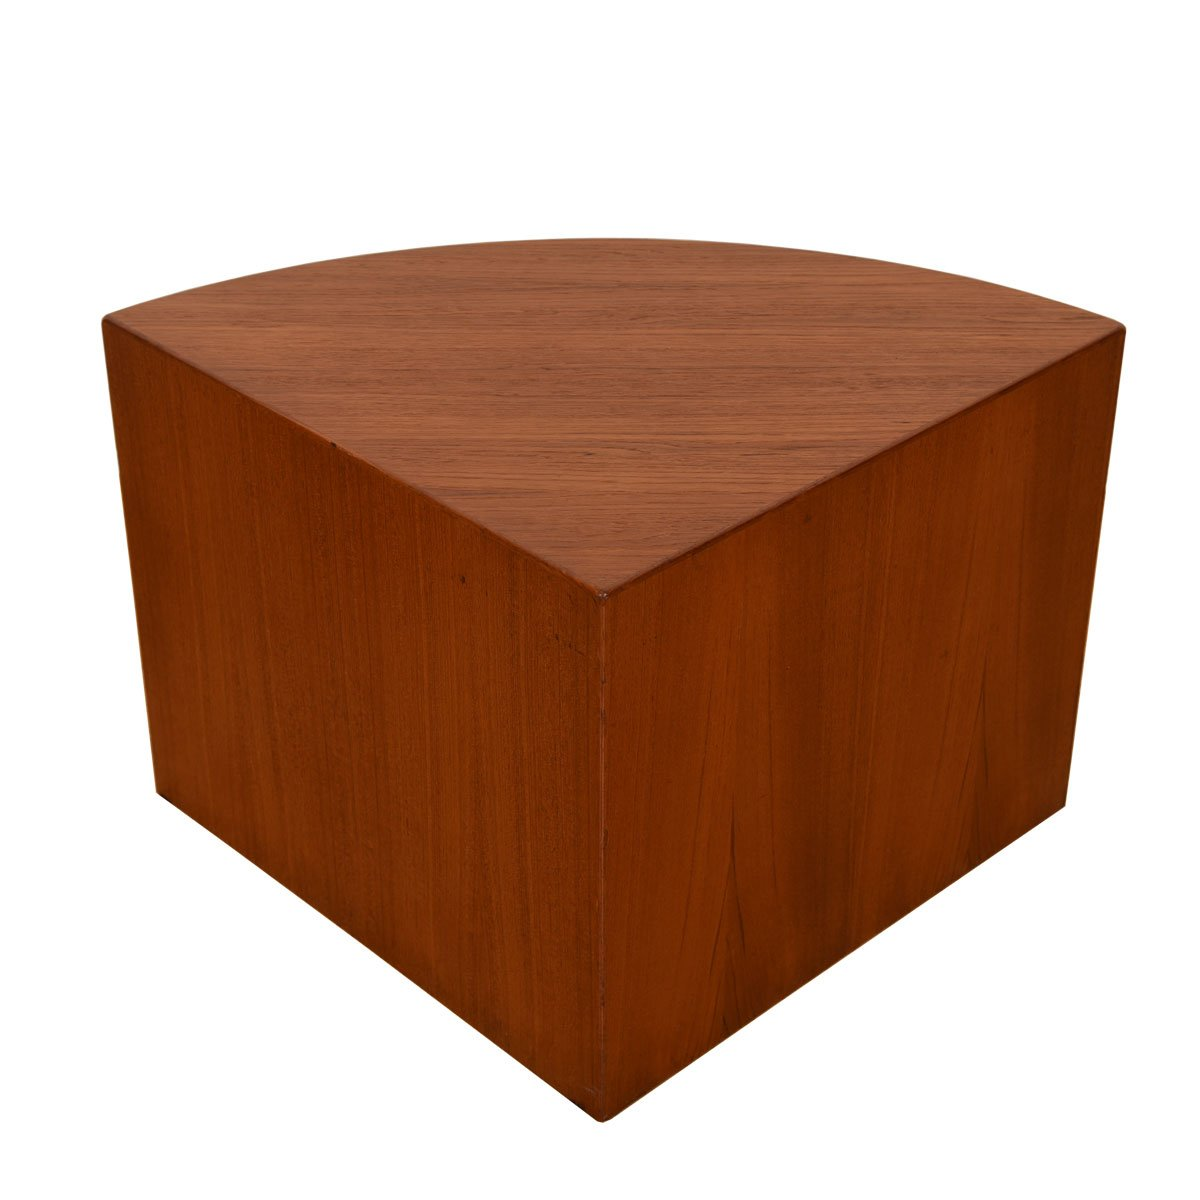 Danish Modern Teak Quarter Round Corner Table.